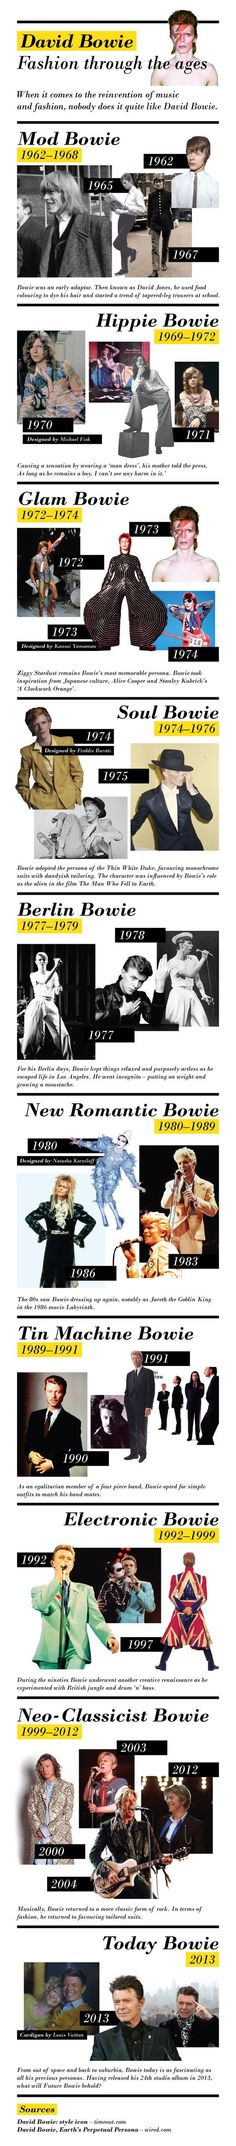 Fashion Icon | David Bowie Style Through the Decades: From Mod & Glam to Neo Classicist. Ally.....::